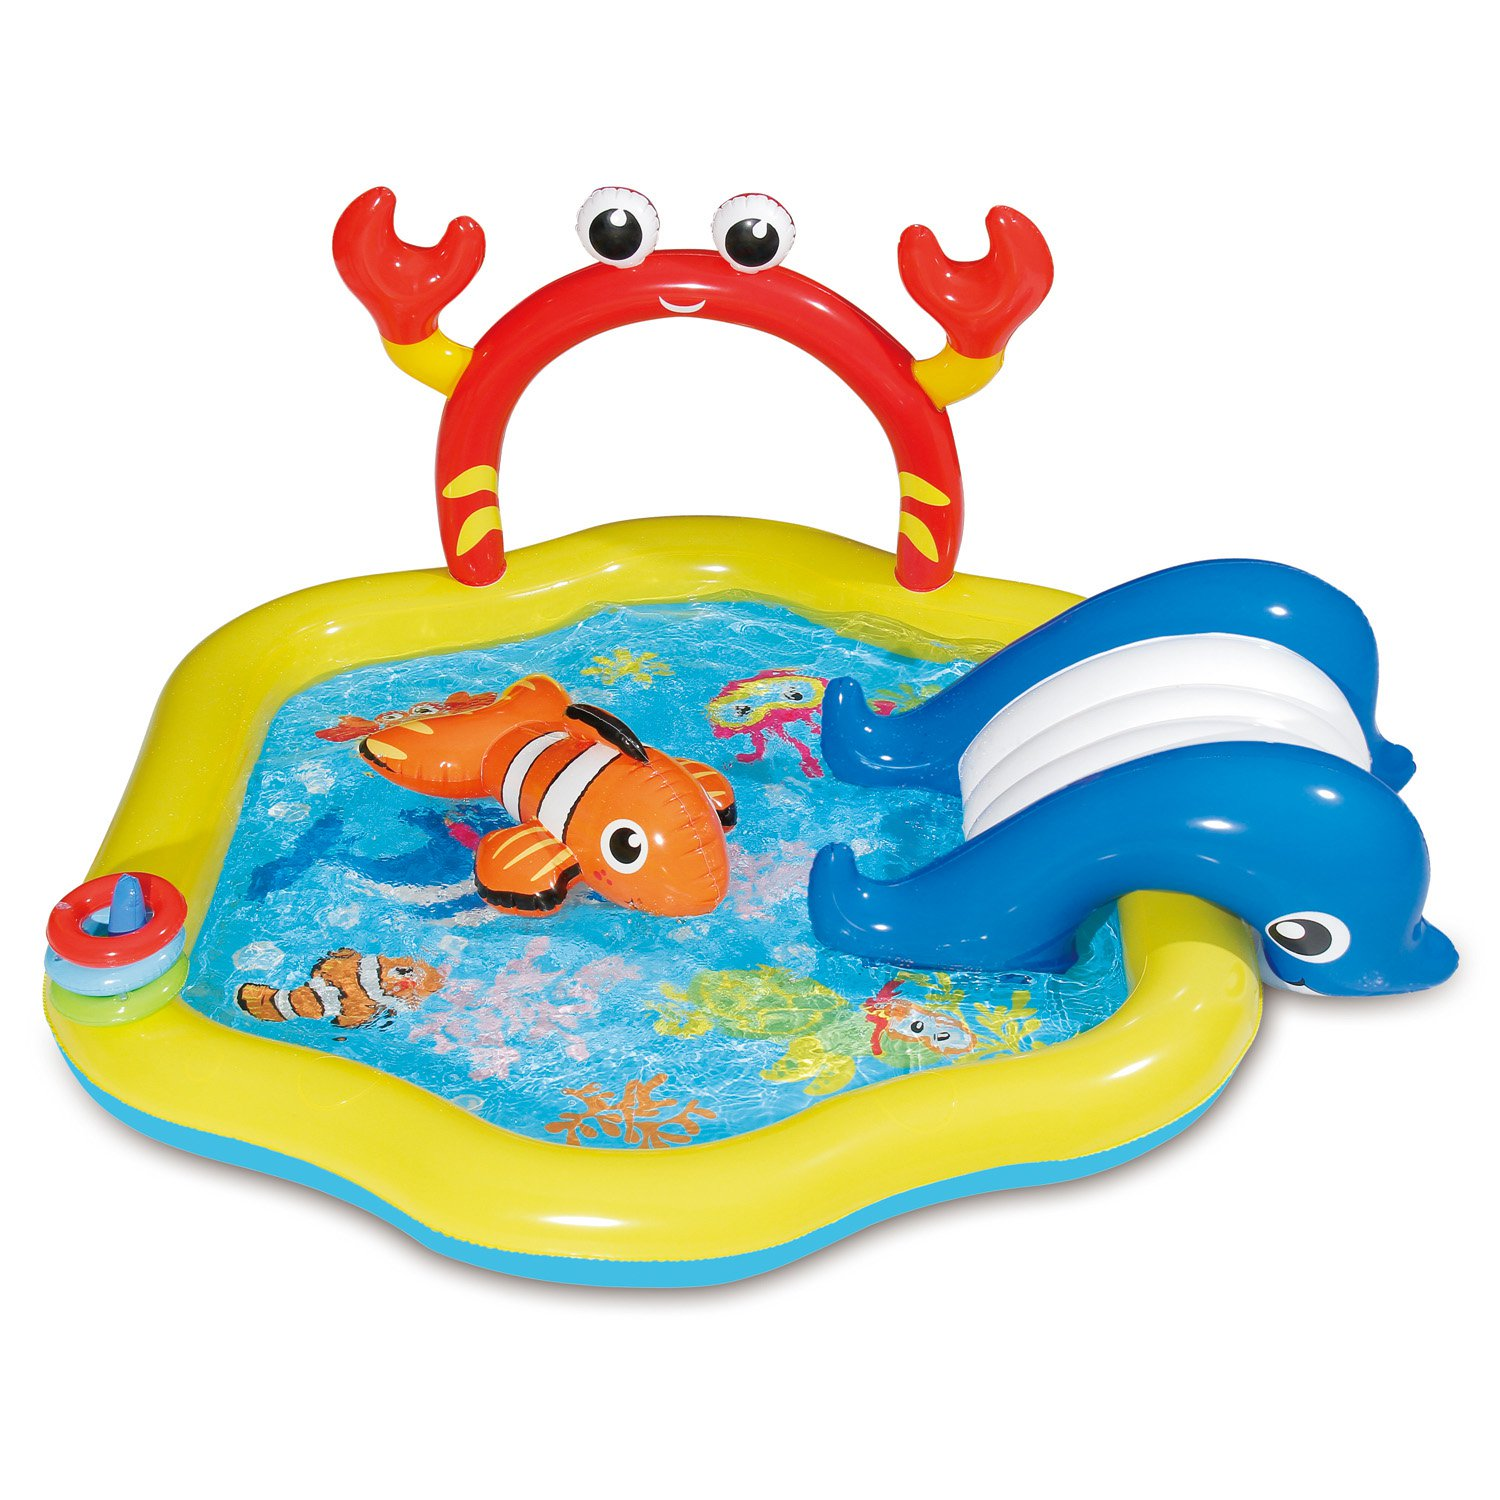 Summer Waves Inflatable Under the Sea Kiddie Swimming Pool Play Center w  Slide by Summer Waves